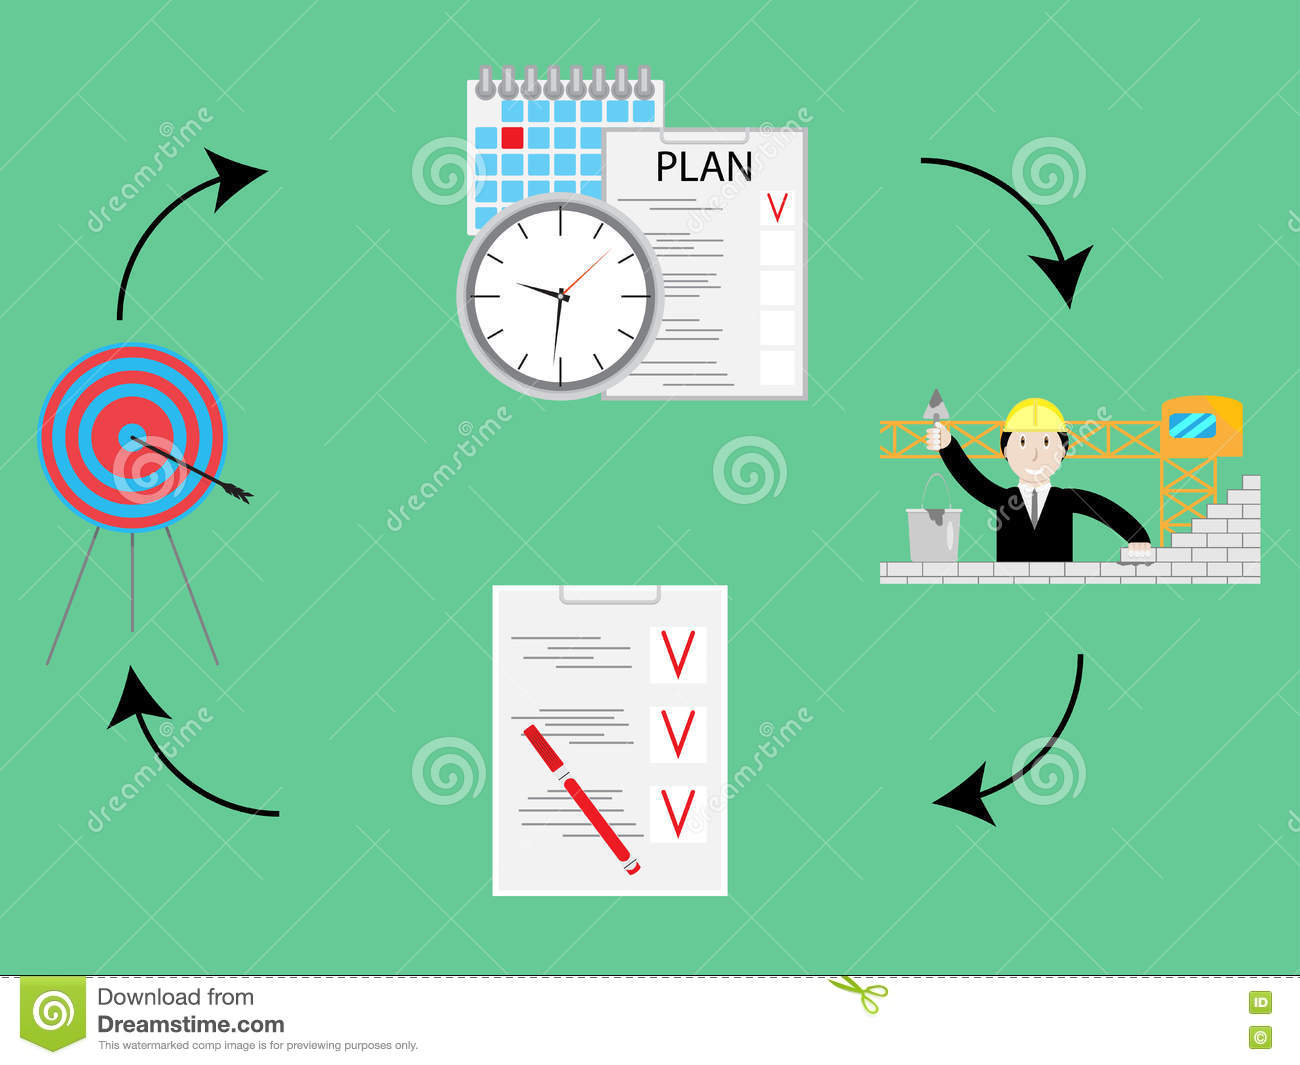 performance improvement cycle diagram daikin inverter air conditioner wiring pdca or plan do check act royalty-free stock photo | cartoondealer.com #25703319